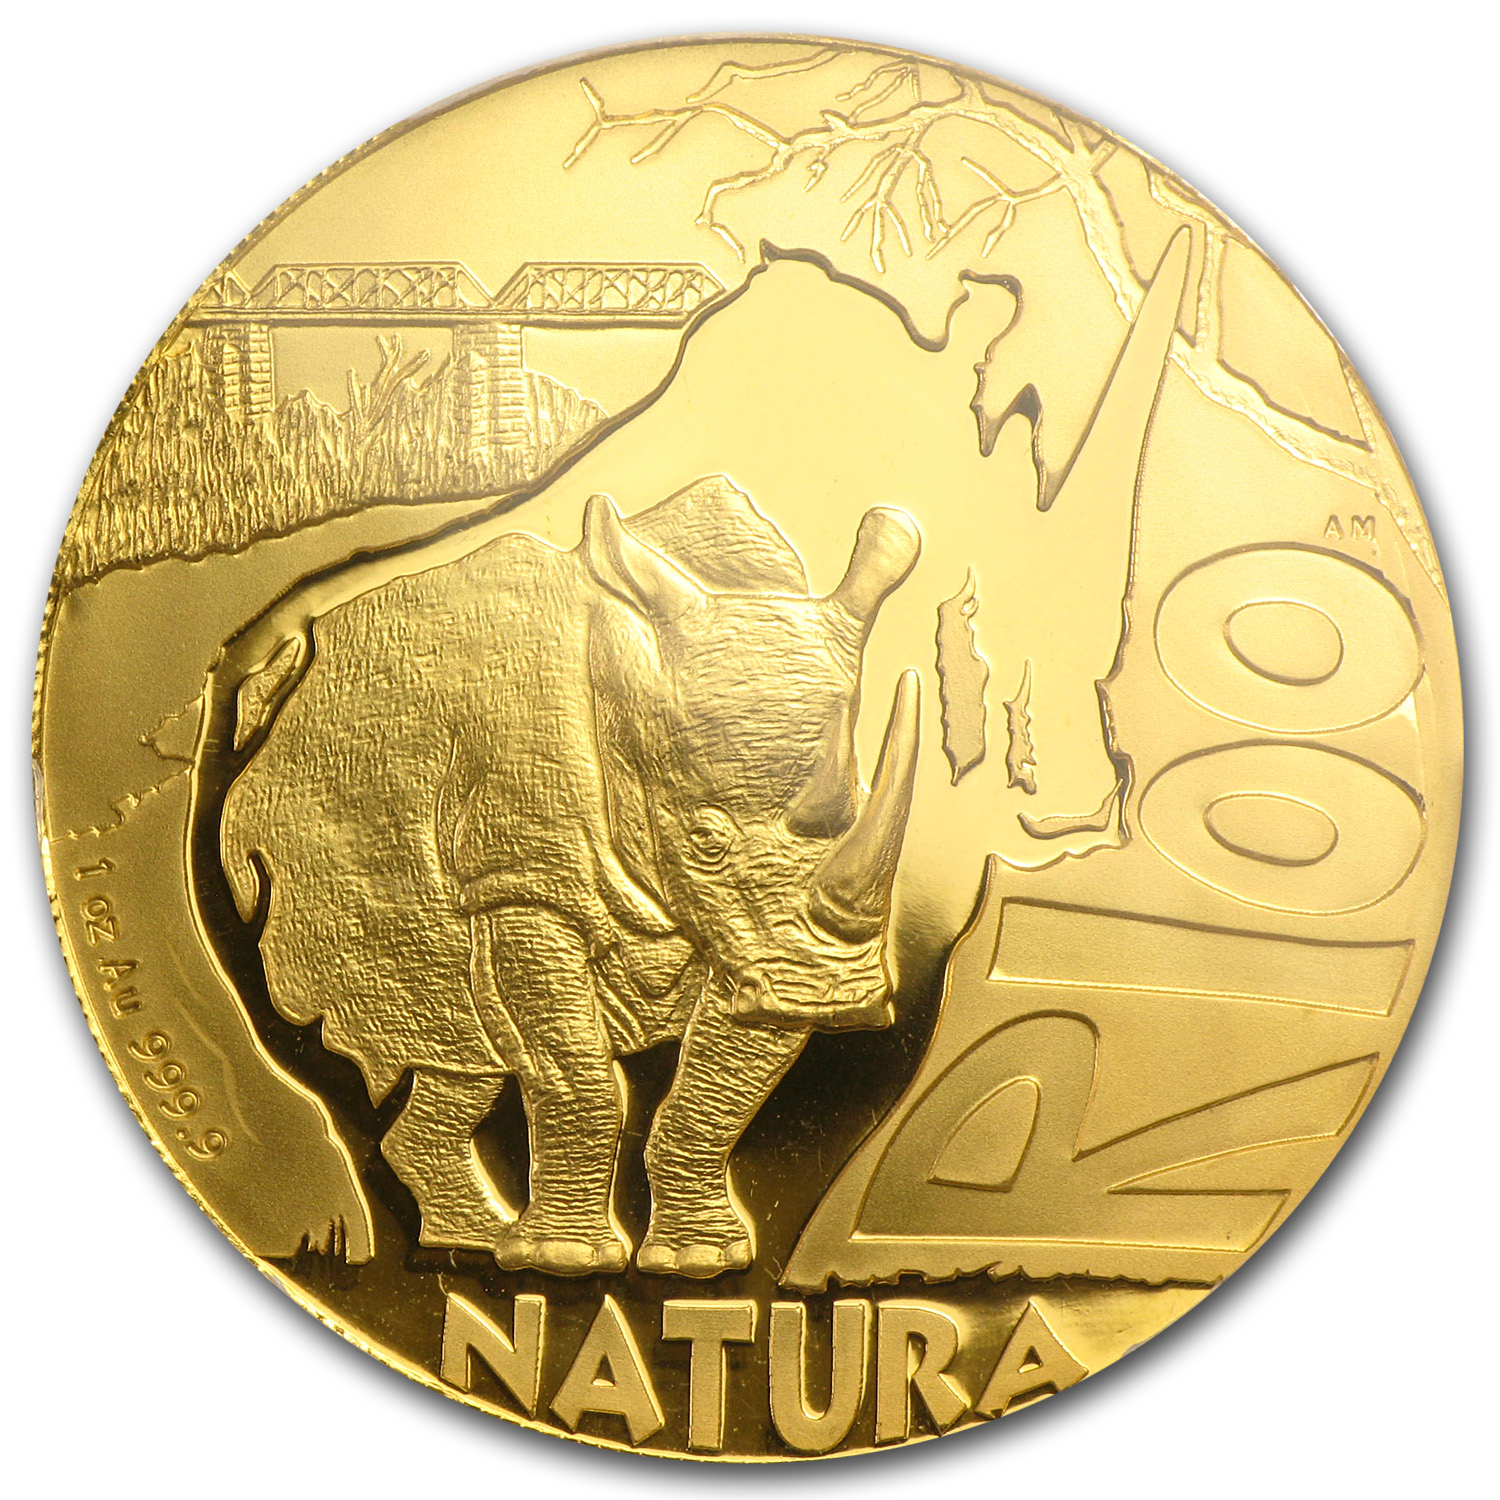 2009 1 oz Gold South African Natura (White Rhino) PR-69 PCGS